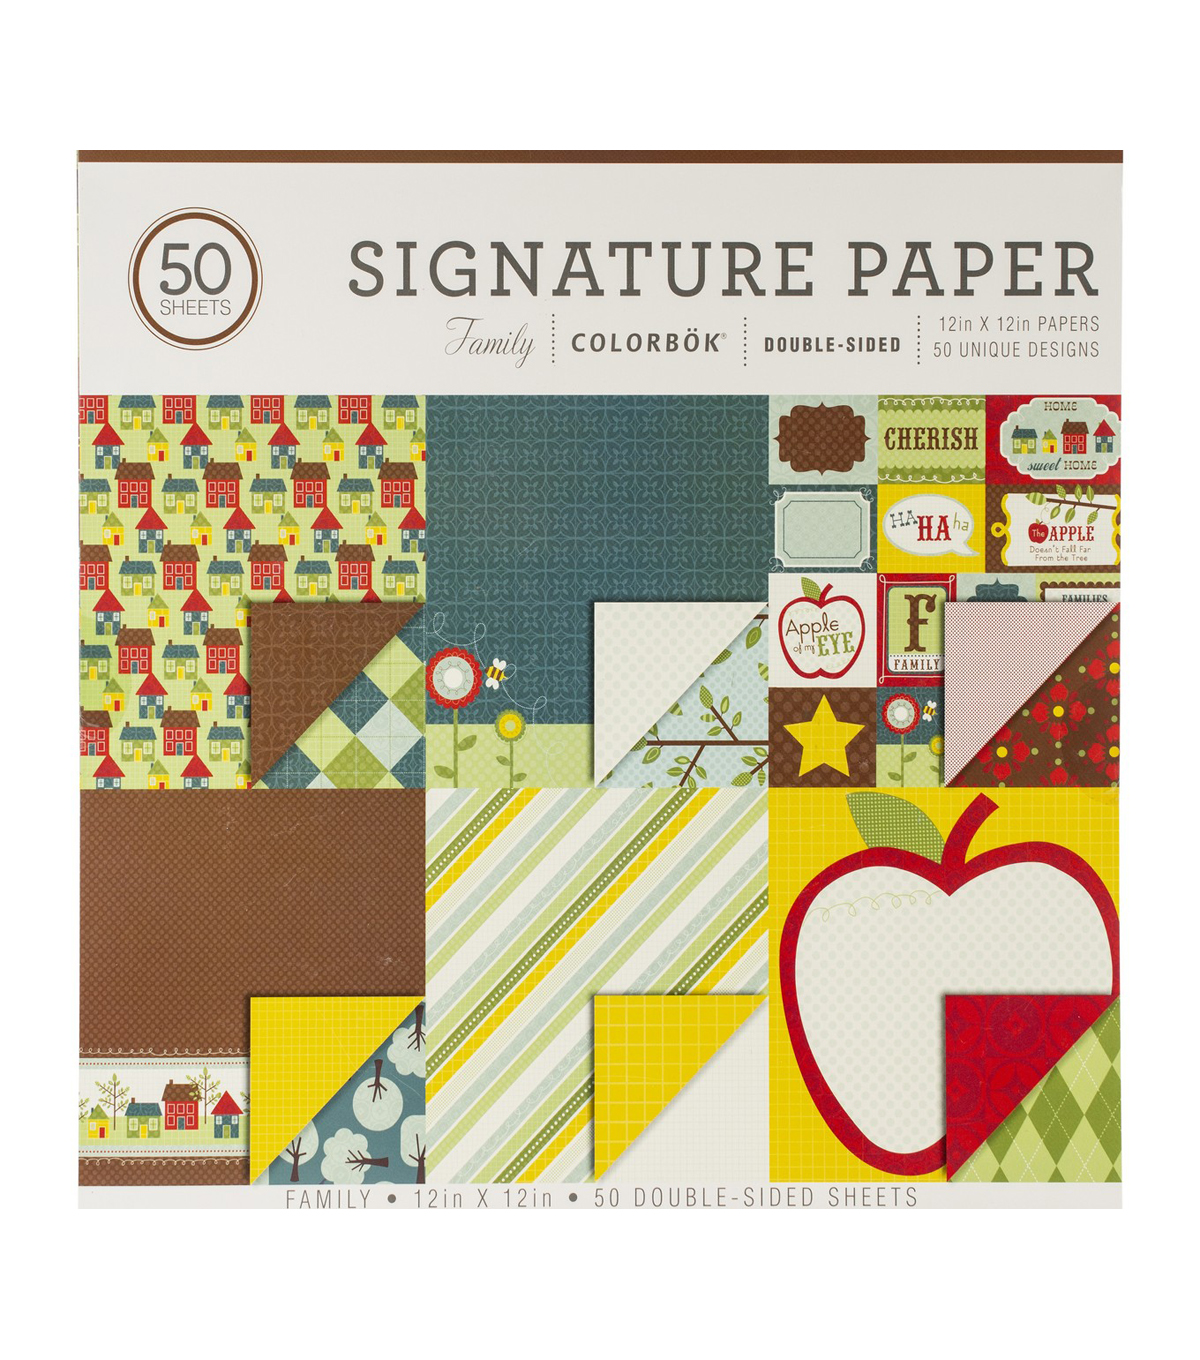 Colorbok Family 50 pk Double-sided Signature Papers